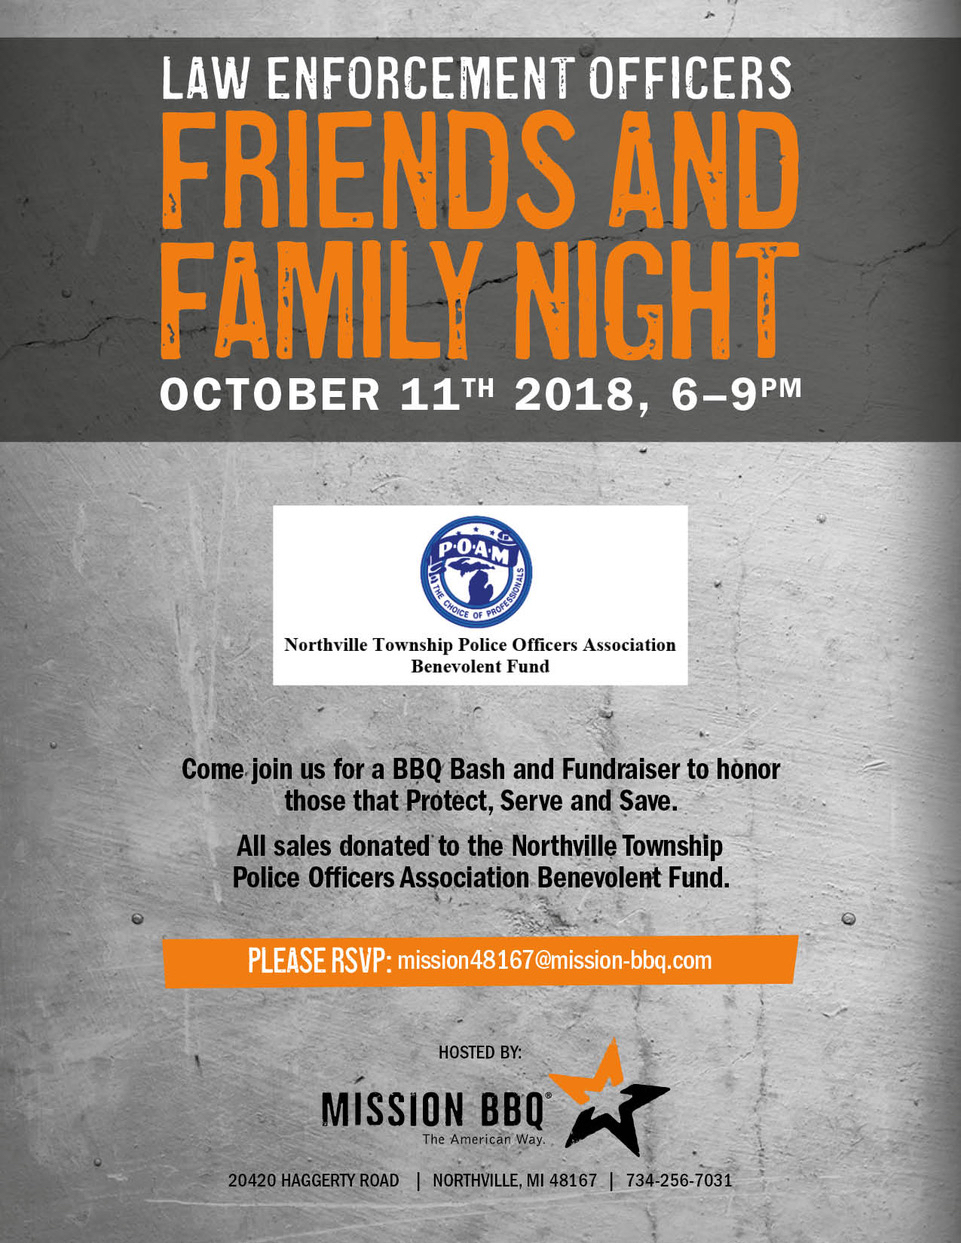 Friends and Family Night Poster